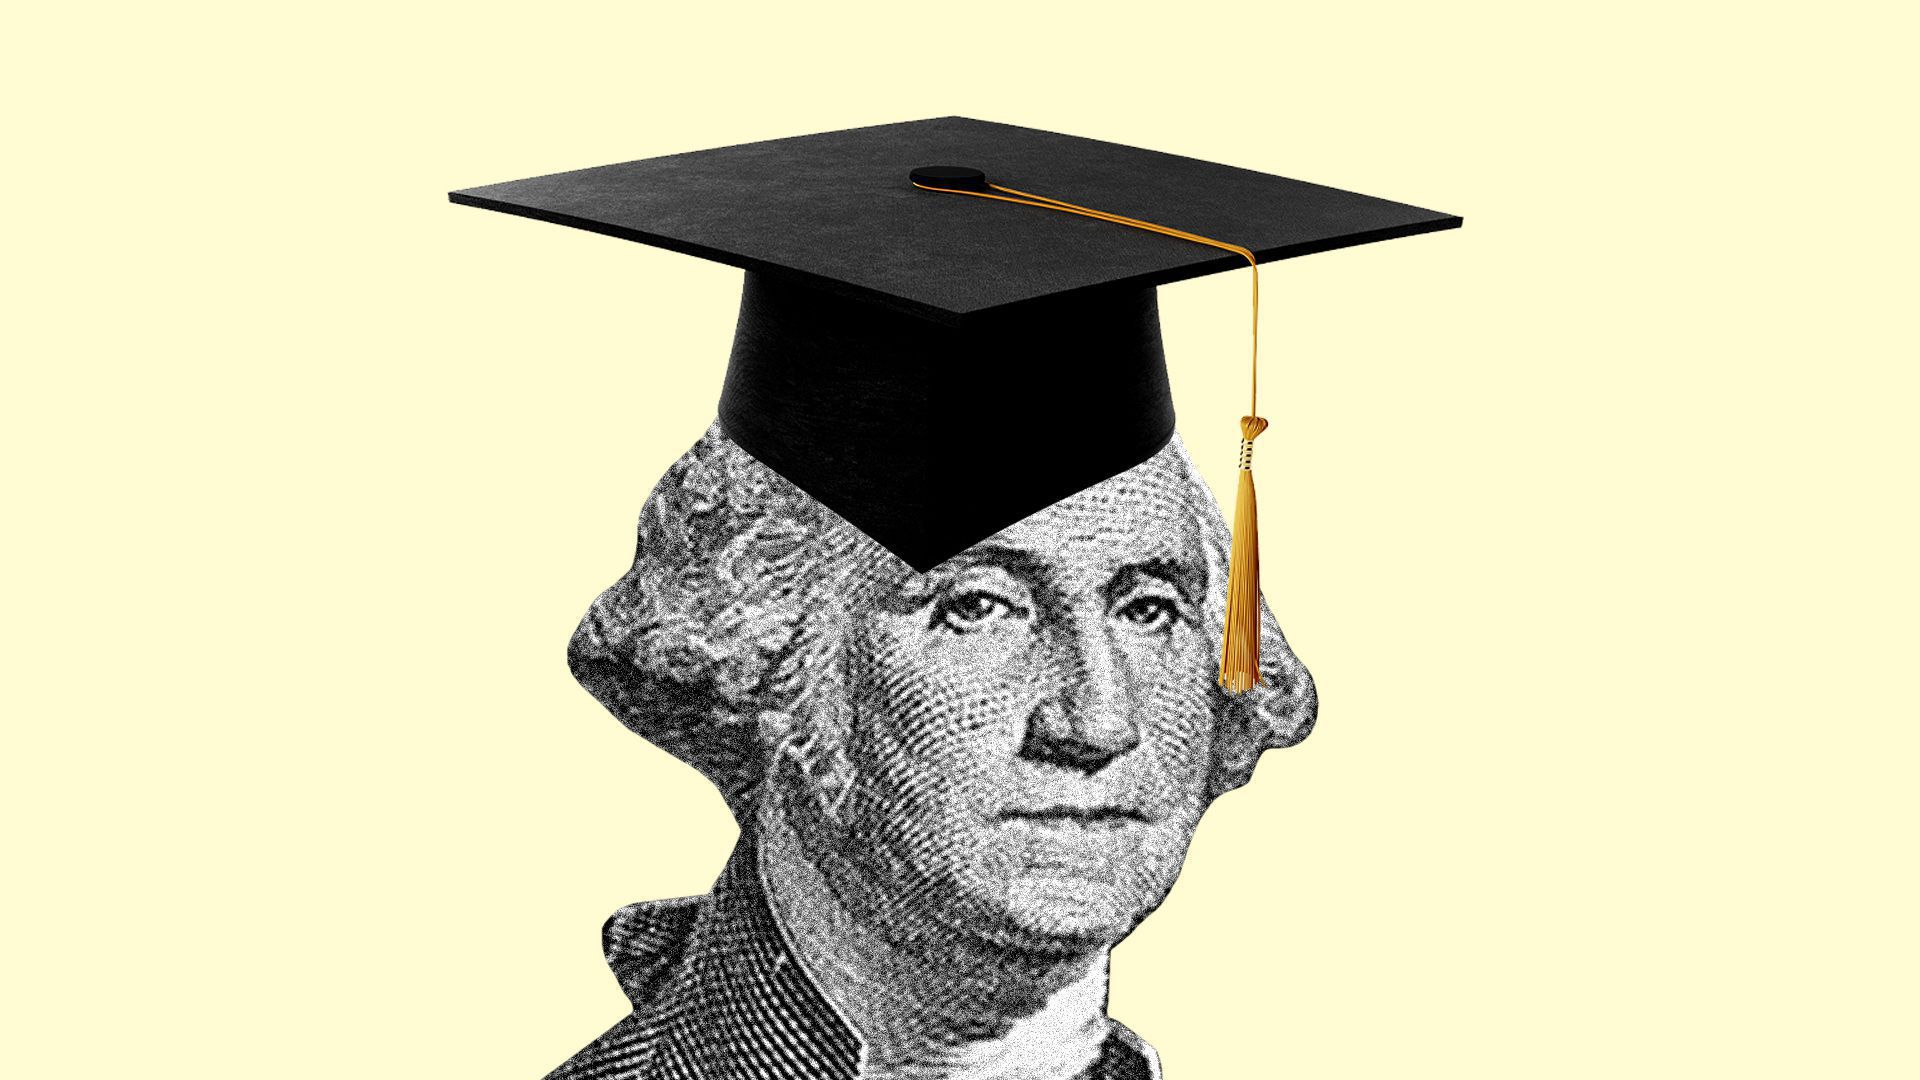 George Washington's face illustrated with a grad hat on.